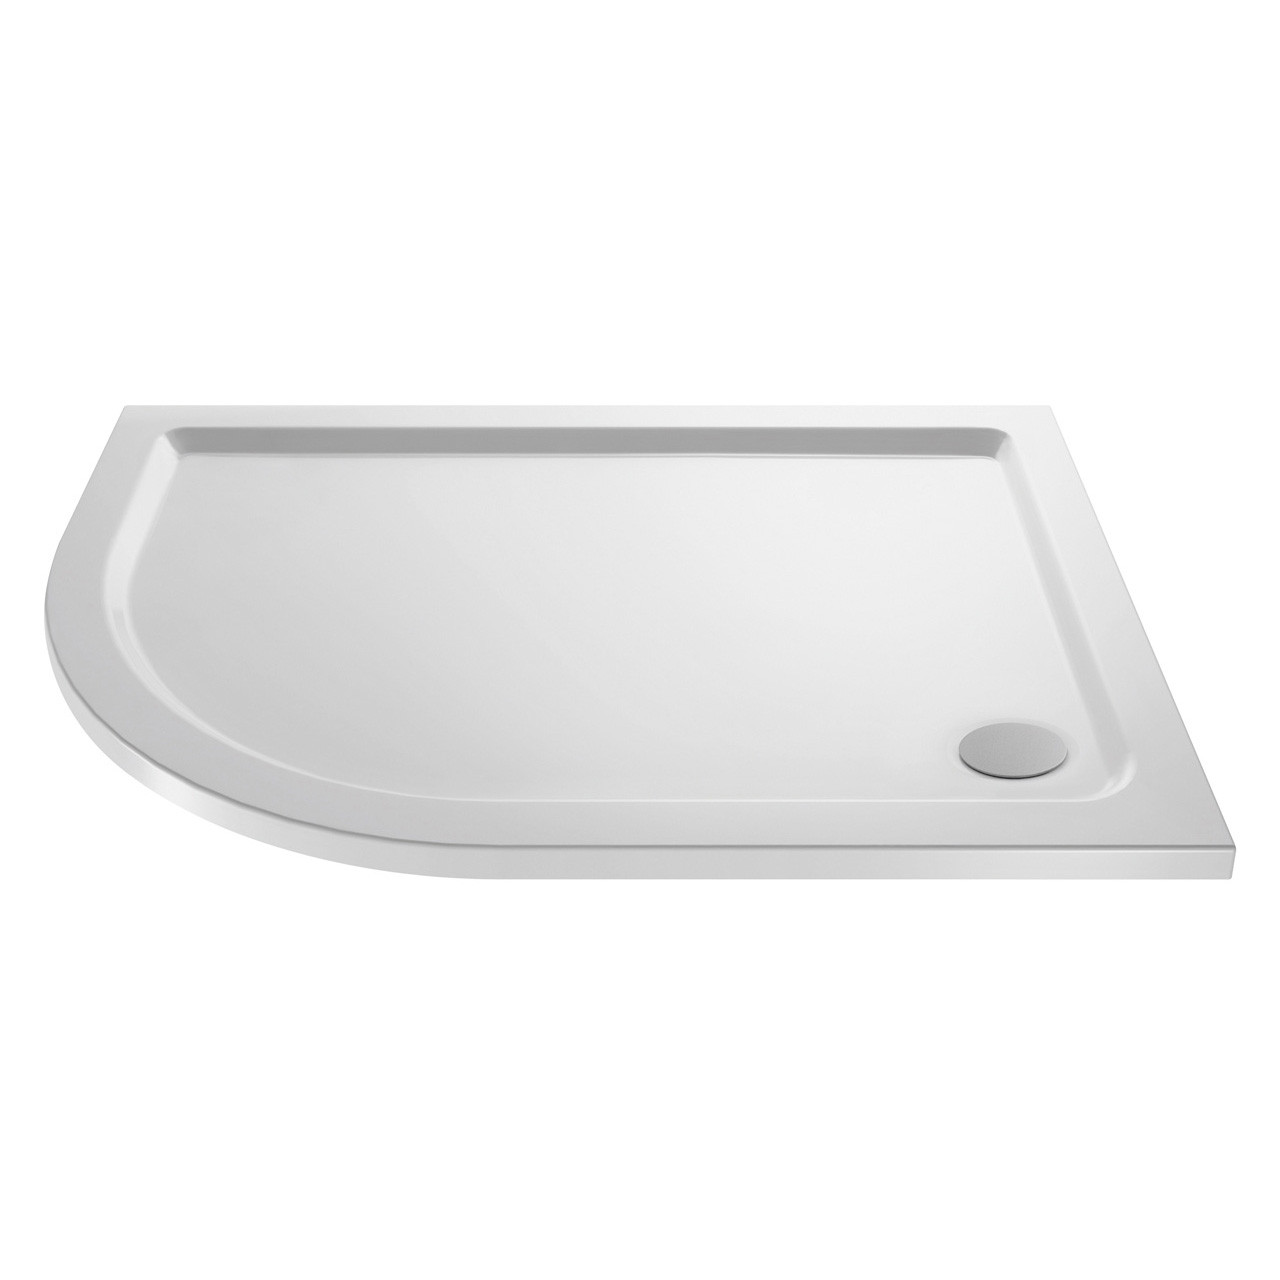 Premier Pearlstone Left Hand Offset Shower Tray 900mm x 760mm x 40mm - NTP101